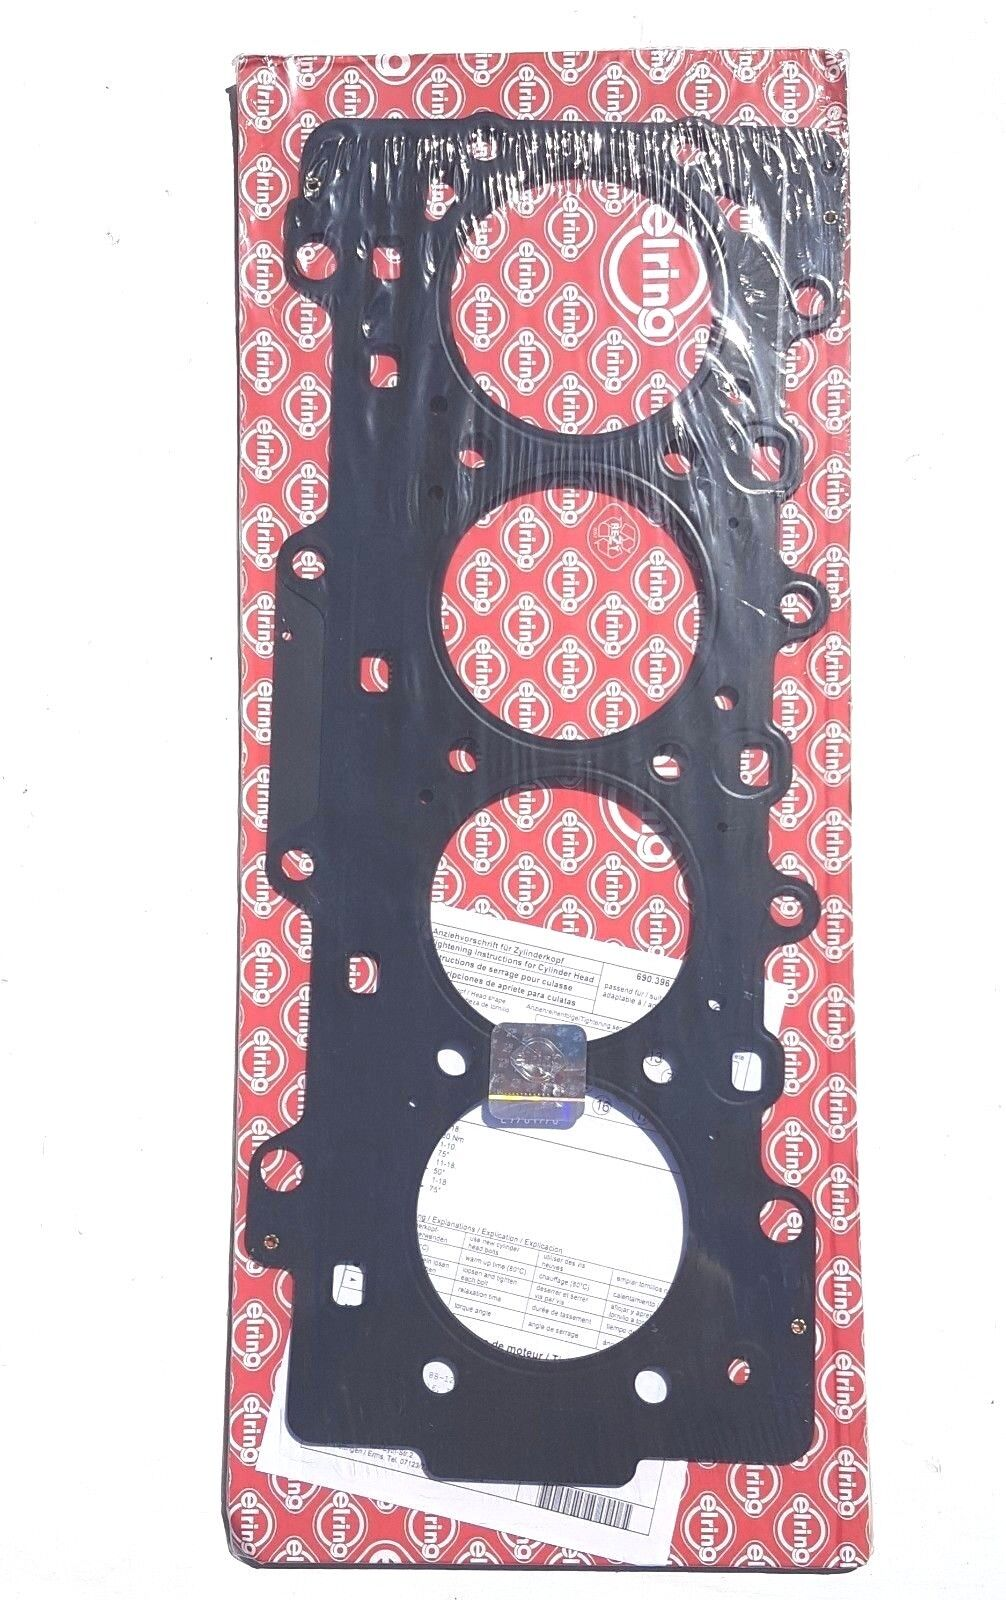 ELRING OIL PAN SUMP GASKET 690531 G NEW OE REPLACEMENT